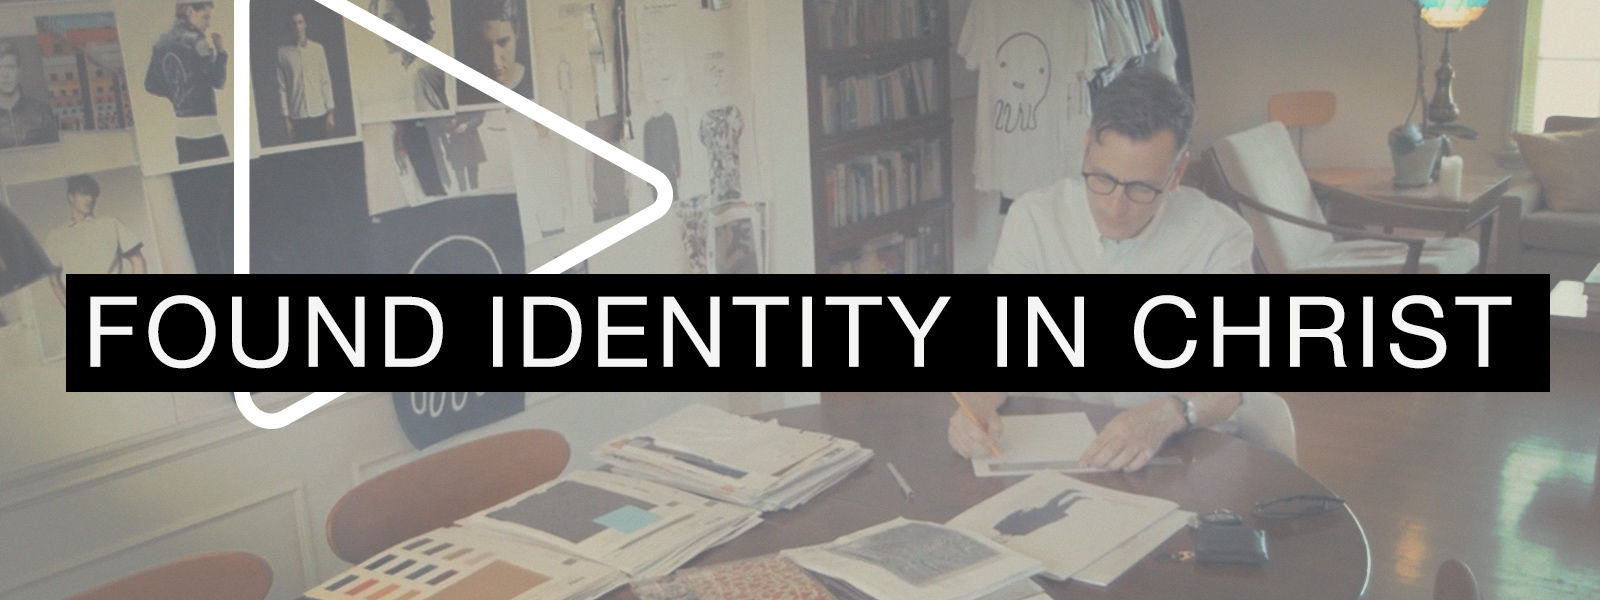 Found Identity in Christ